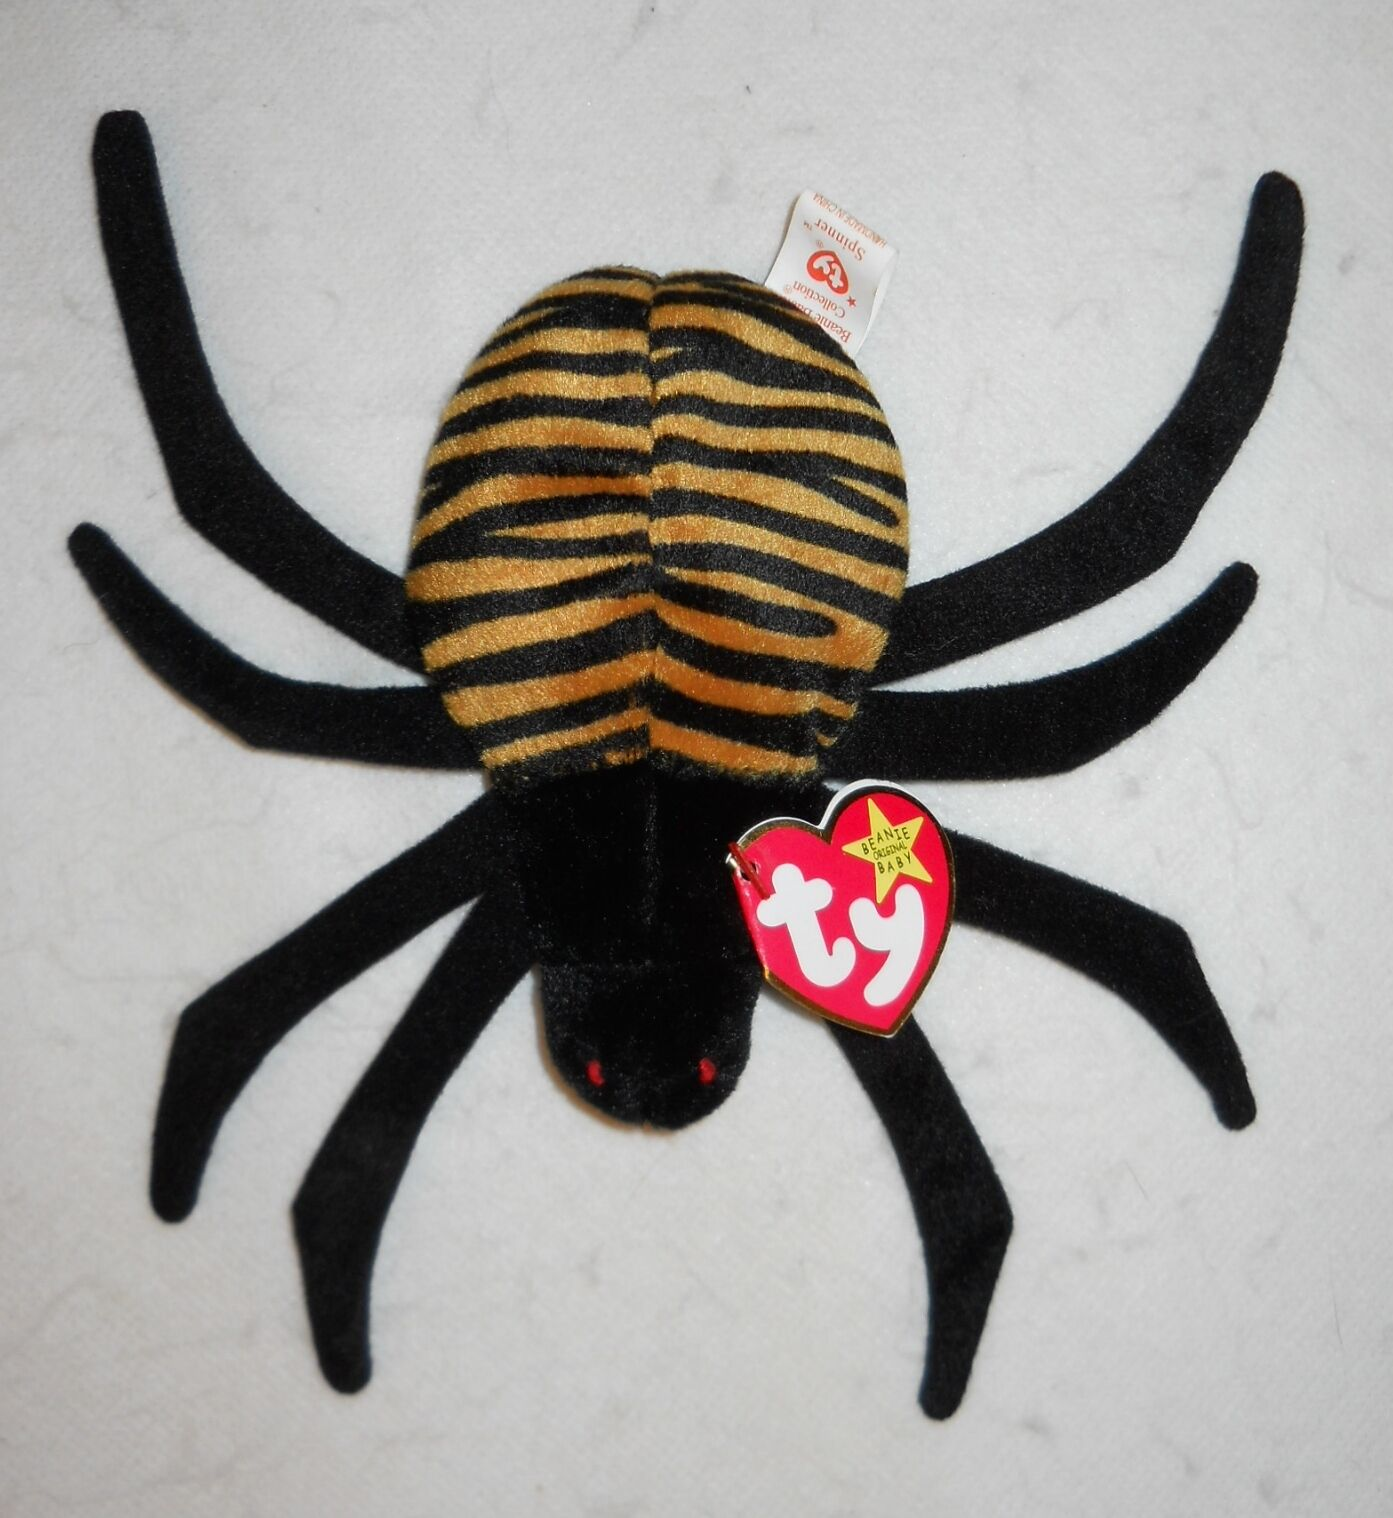 TY BEANIE BABY ORIGINAL, SPINNER THE SPIDER  1996  STYLE 4036, TAG ERRORS, NEW